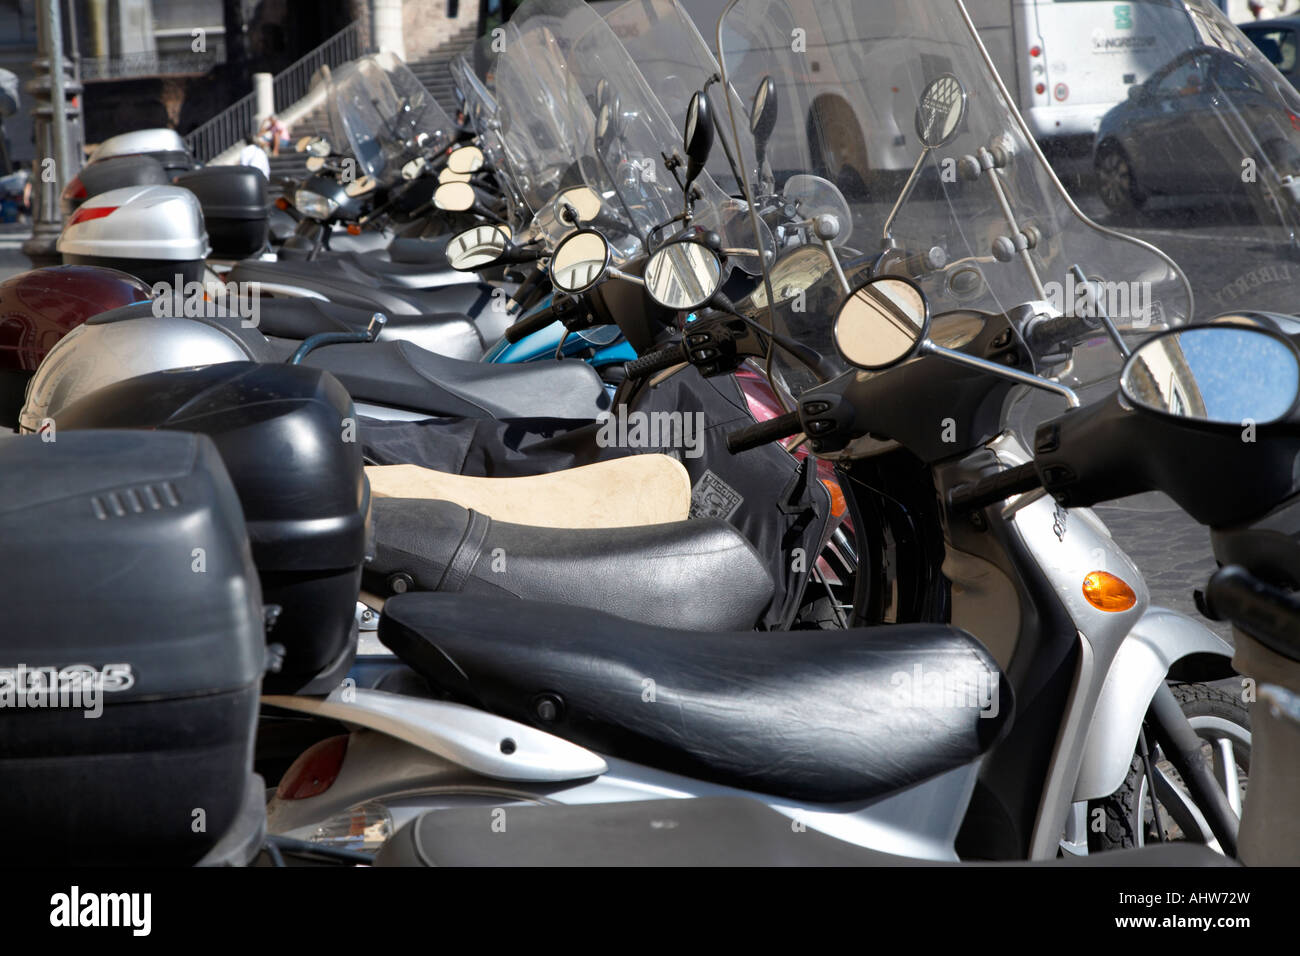 Row of seats and windshields of scooters parked on a street in Rome Lazio Italy - Stock Image